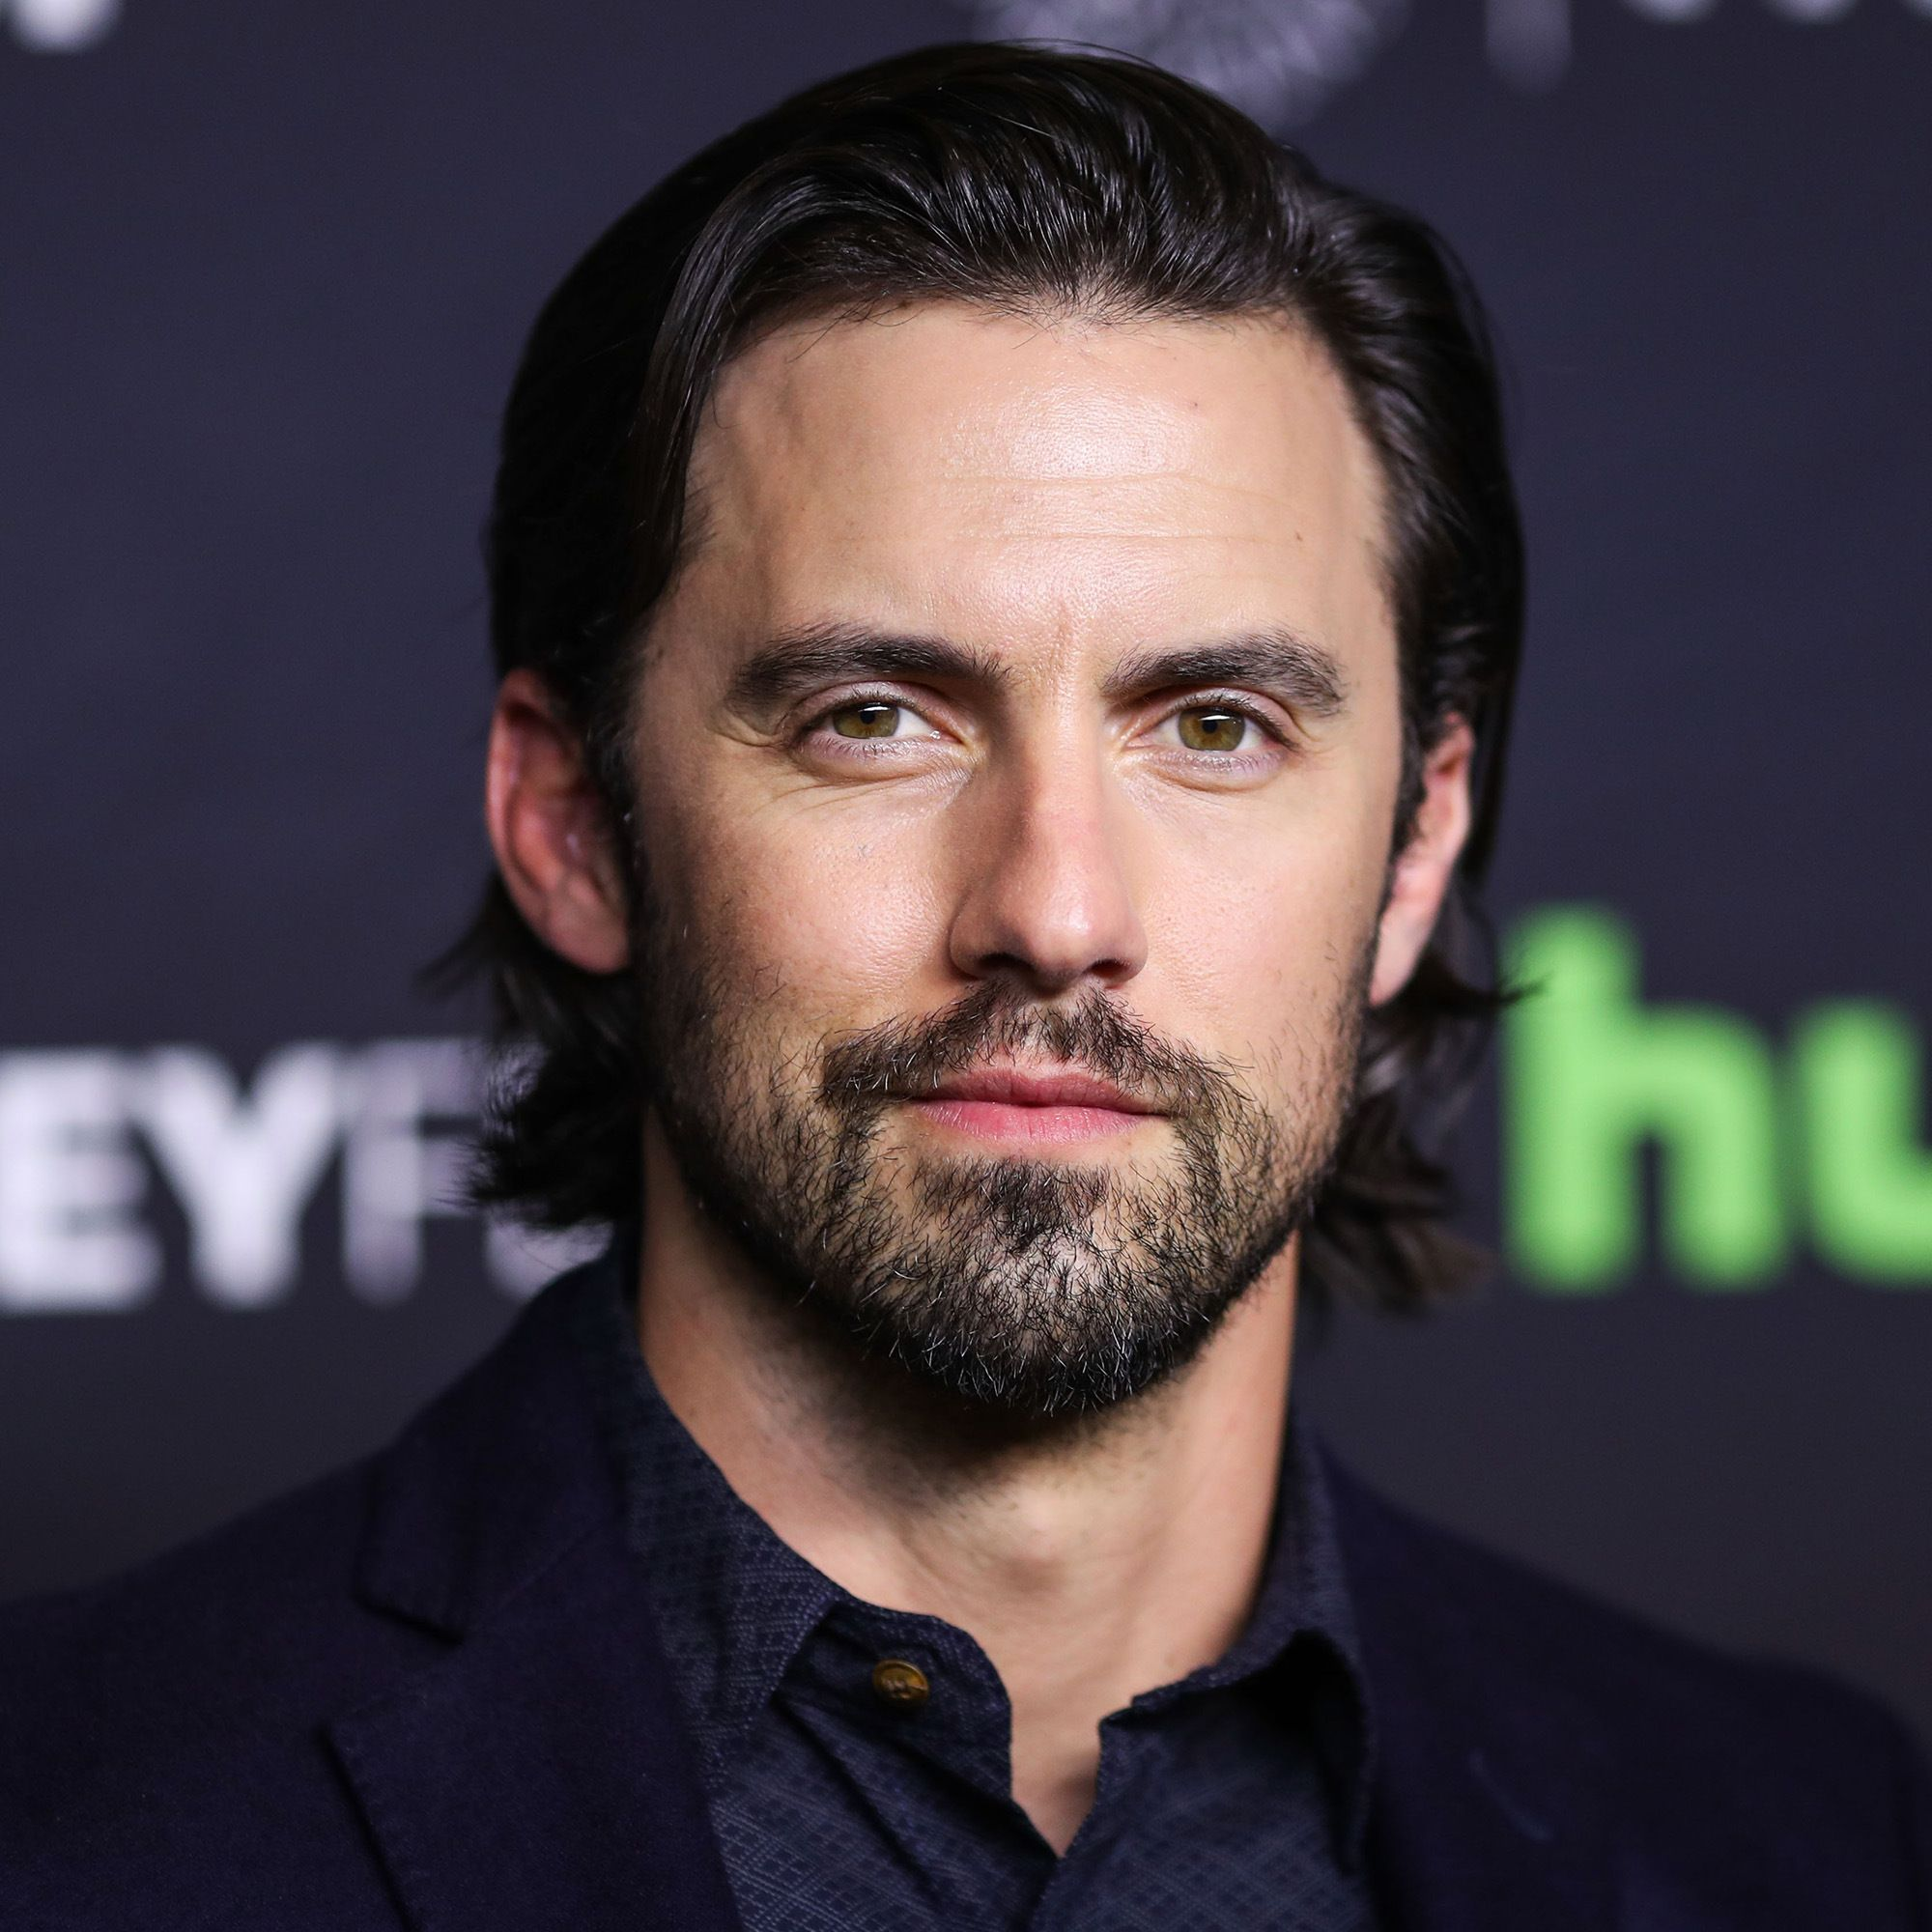 New haircut styles for men why milo ventimiglia explains decided to be less public with his